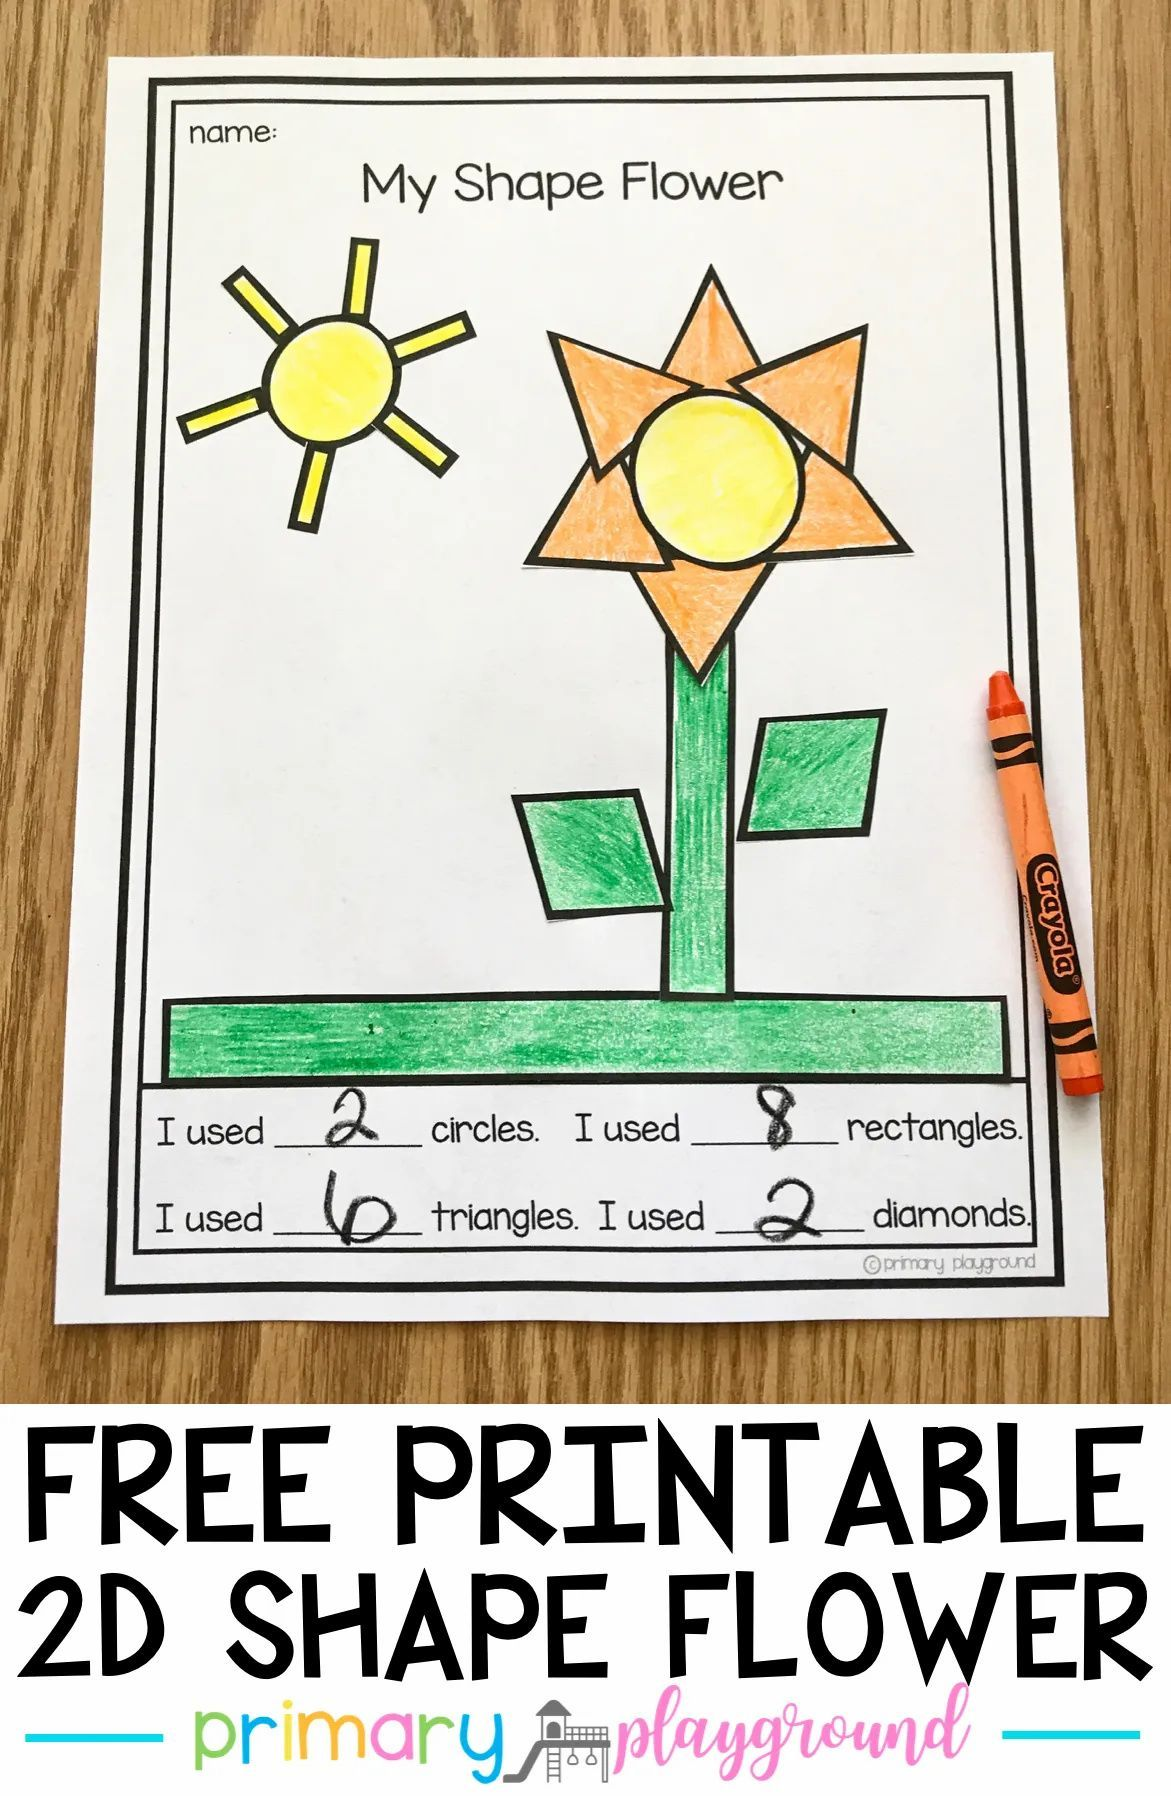 Free Printable 2d Shape Flower Primary Playground In 2021 Teaching Shapes Teaching Blogs 2d Shapes [ 1796 x 1171 Pixel ]